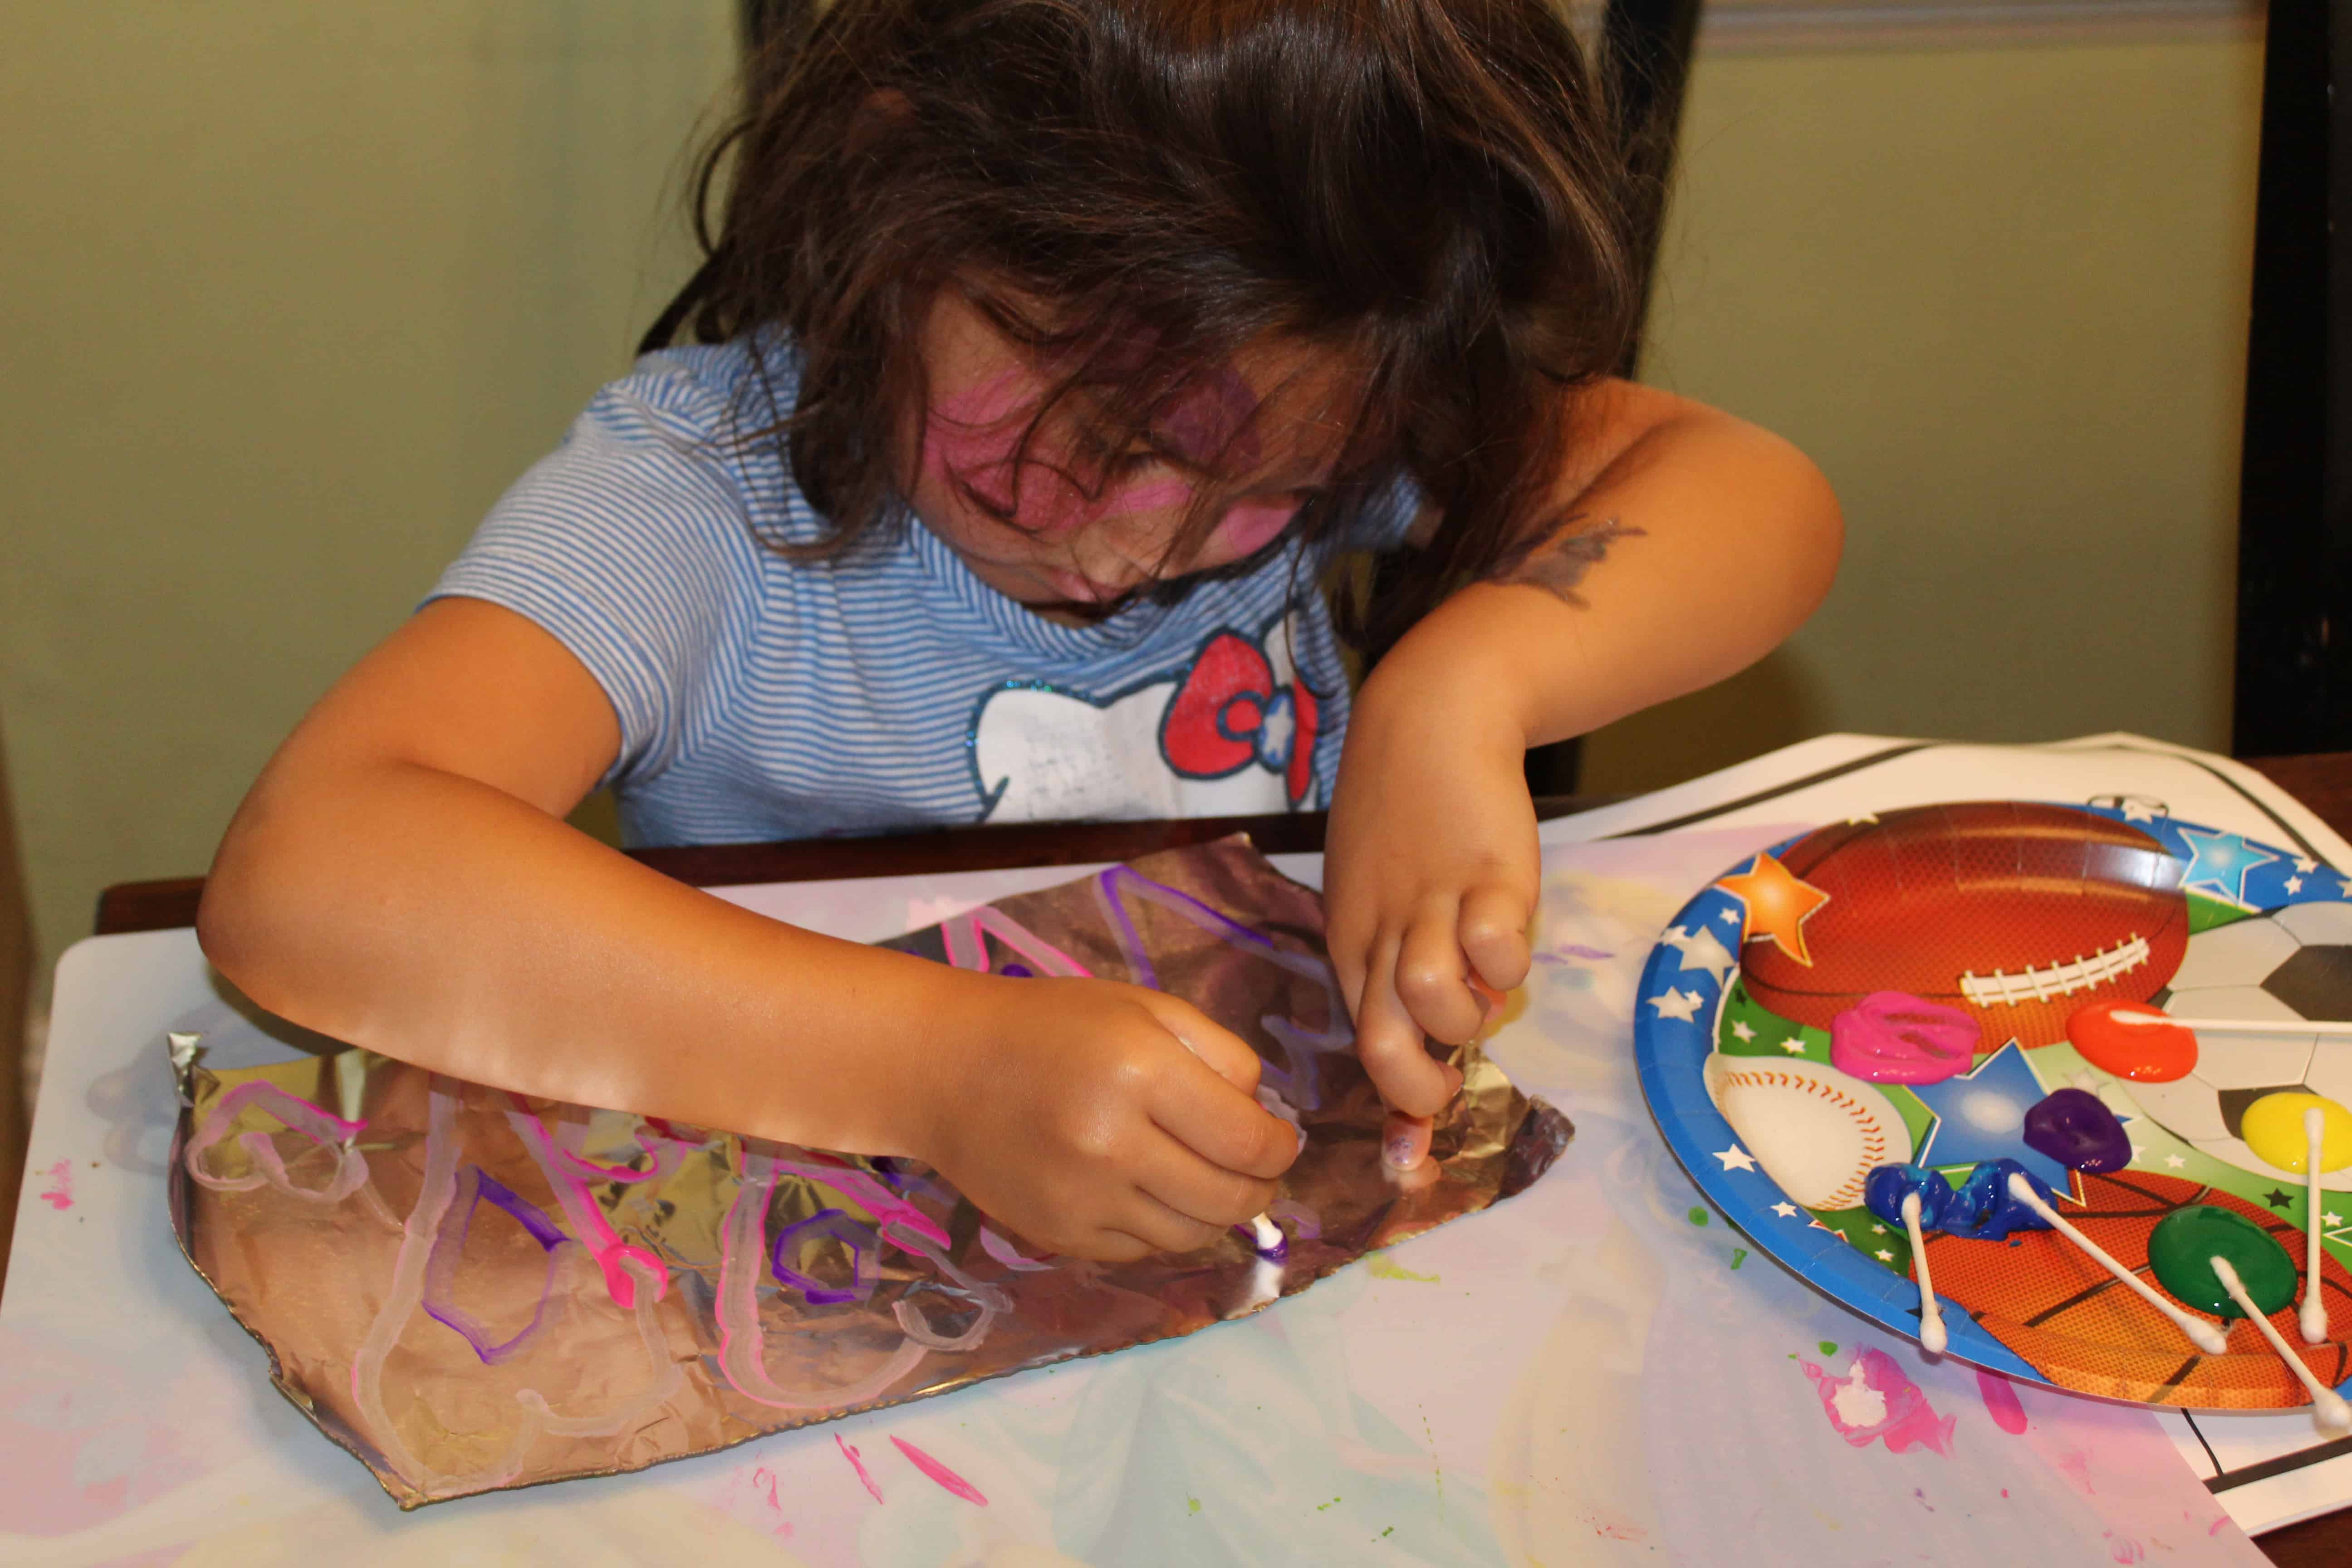 A child painting a sheet of foil with paints using cotton swabs.